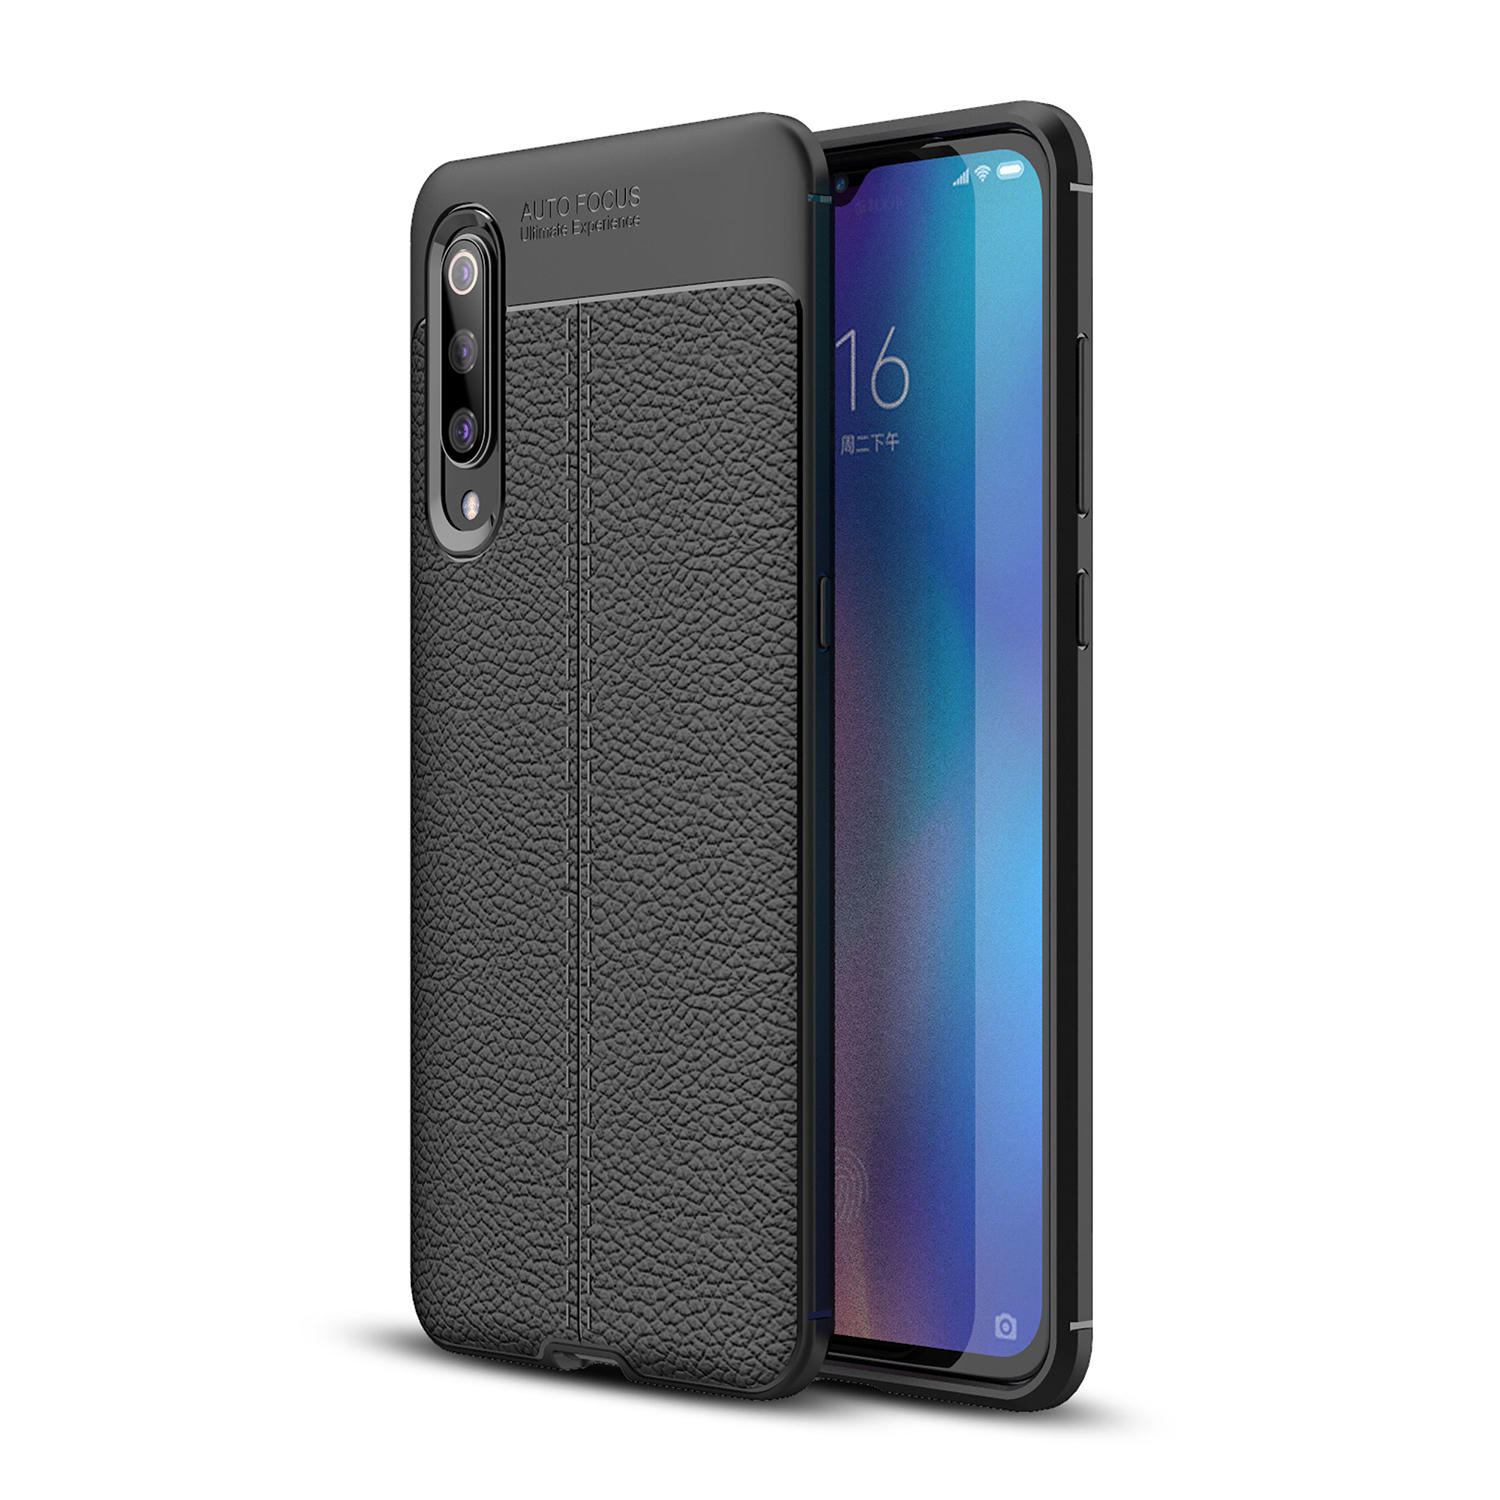 Bakeey Litchi Pattern Shockproof Soft TPU Back Cover Protective Case for Xiaomi Mi9 Mi 9 / Xiaomi Mi9 Mi 9 Transparent E